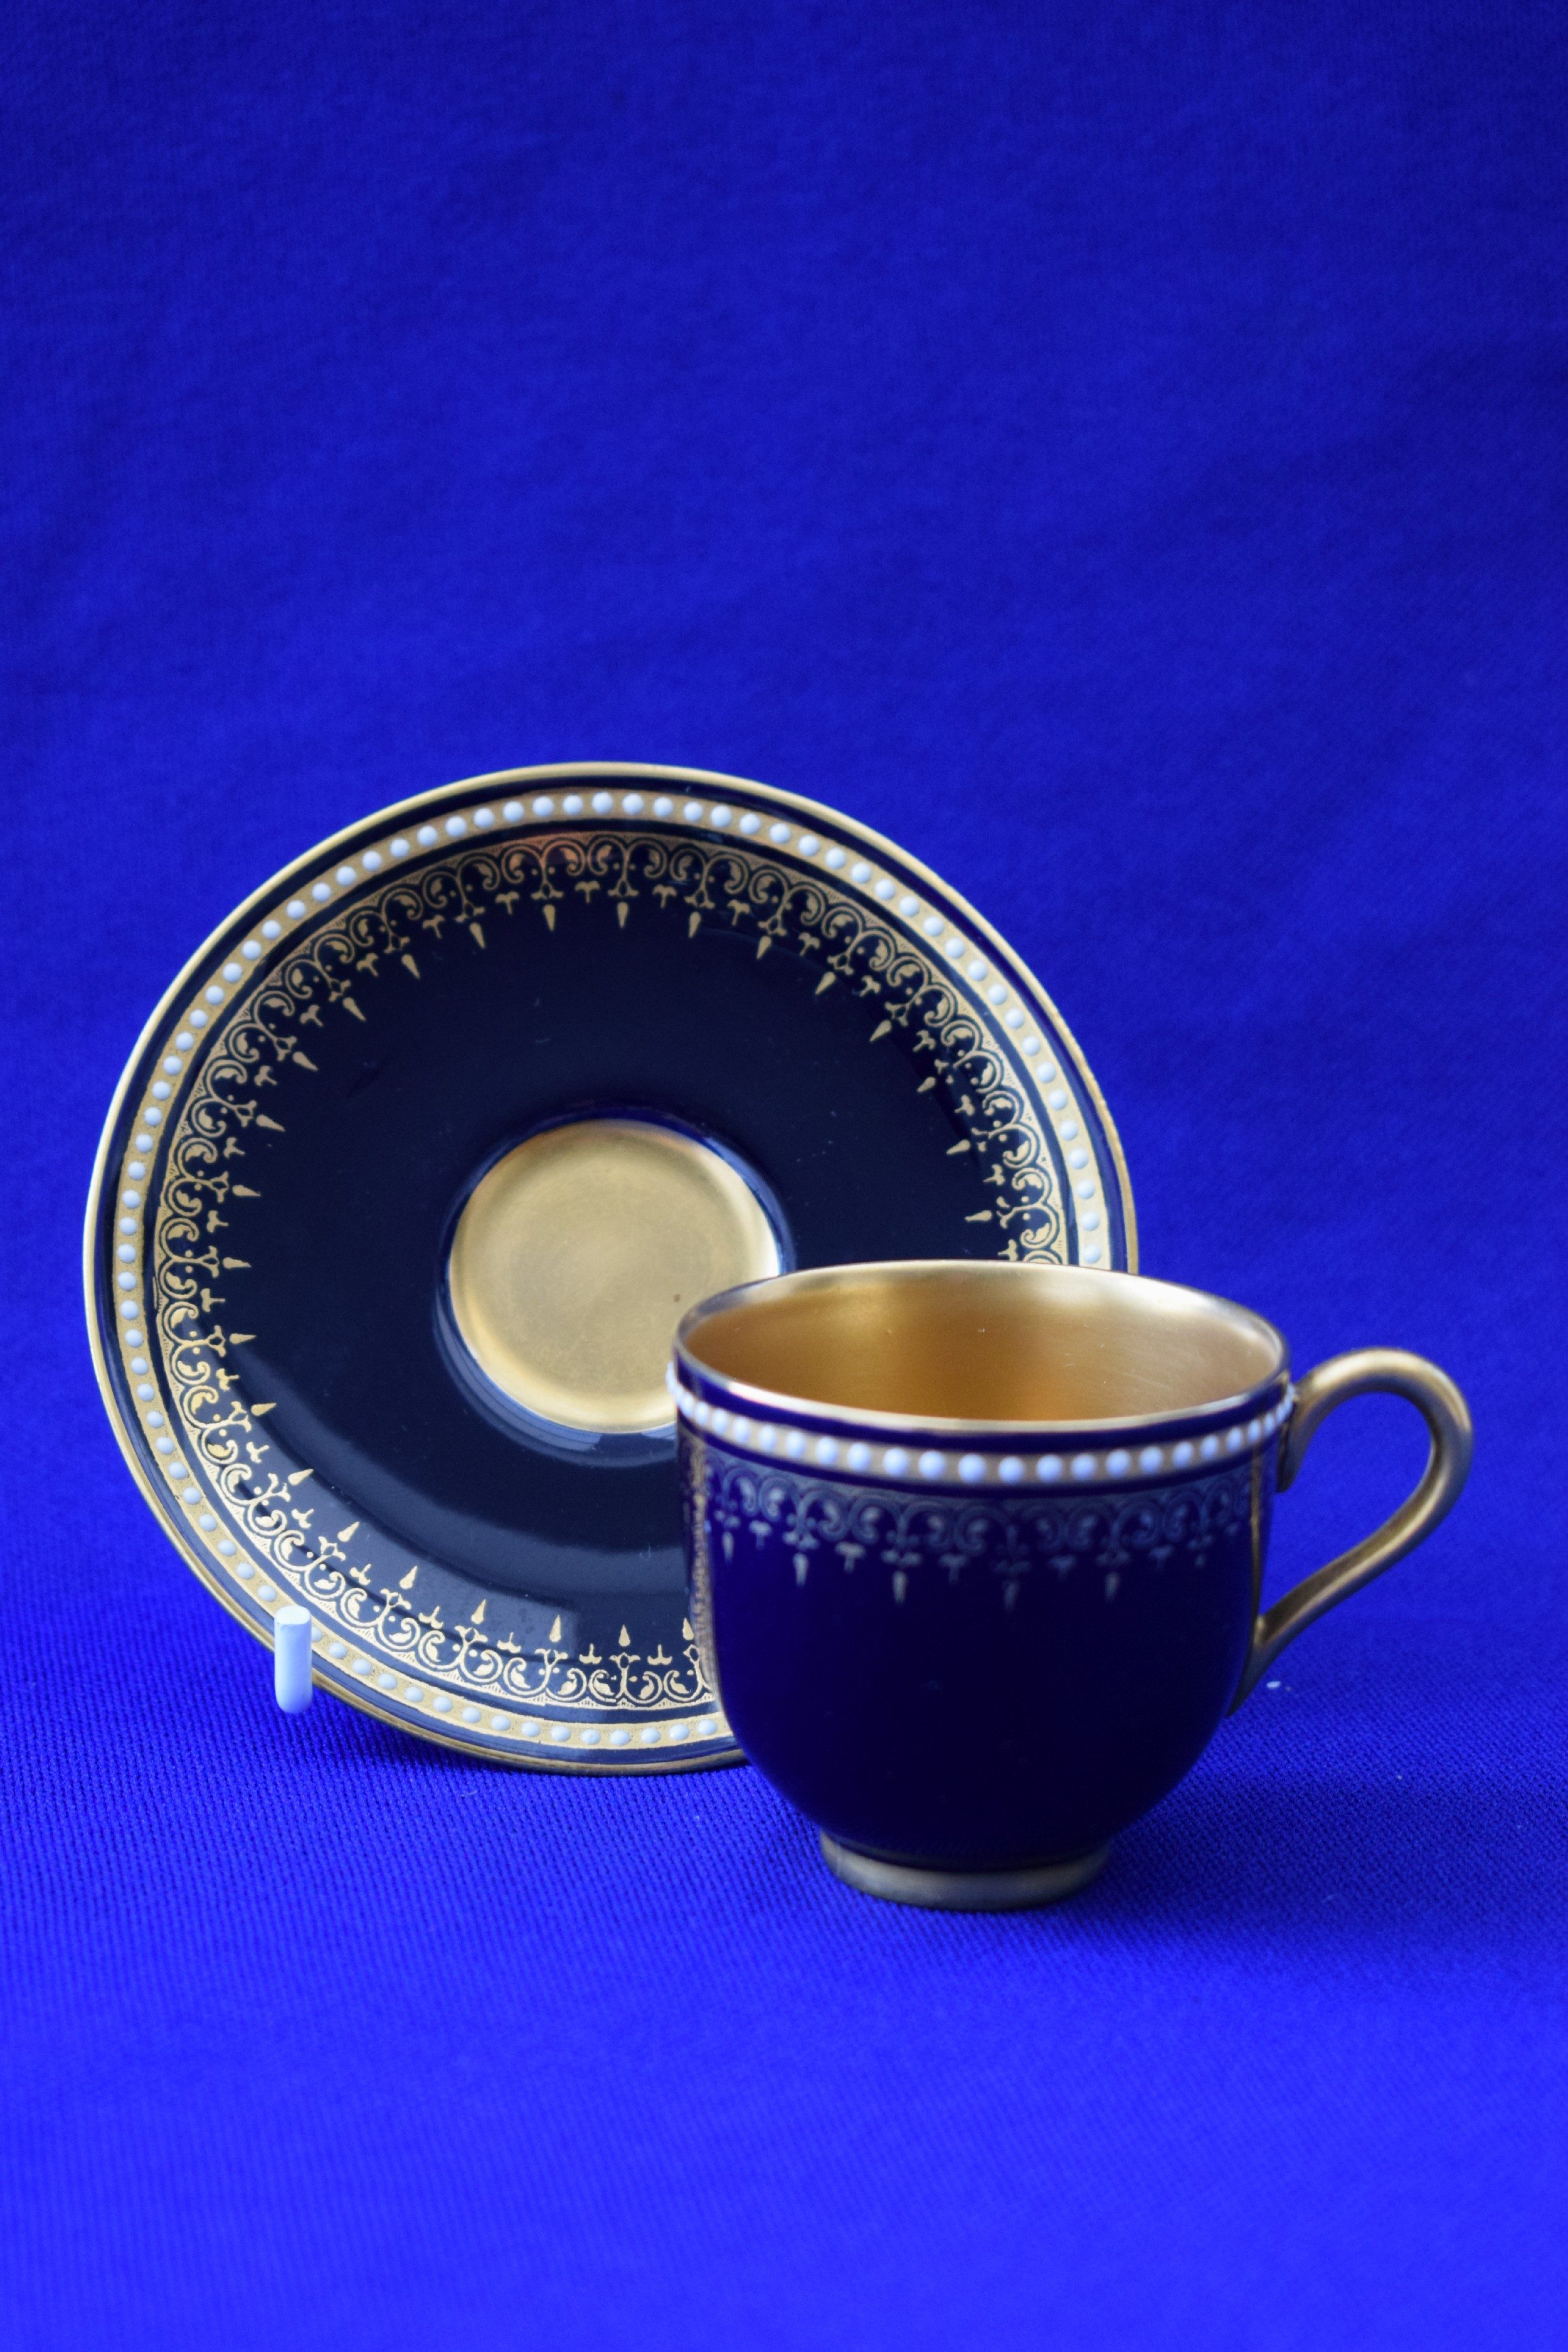 royal worcester demi tasse coffee cup and saucer